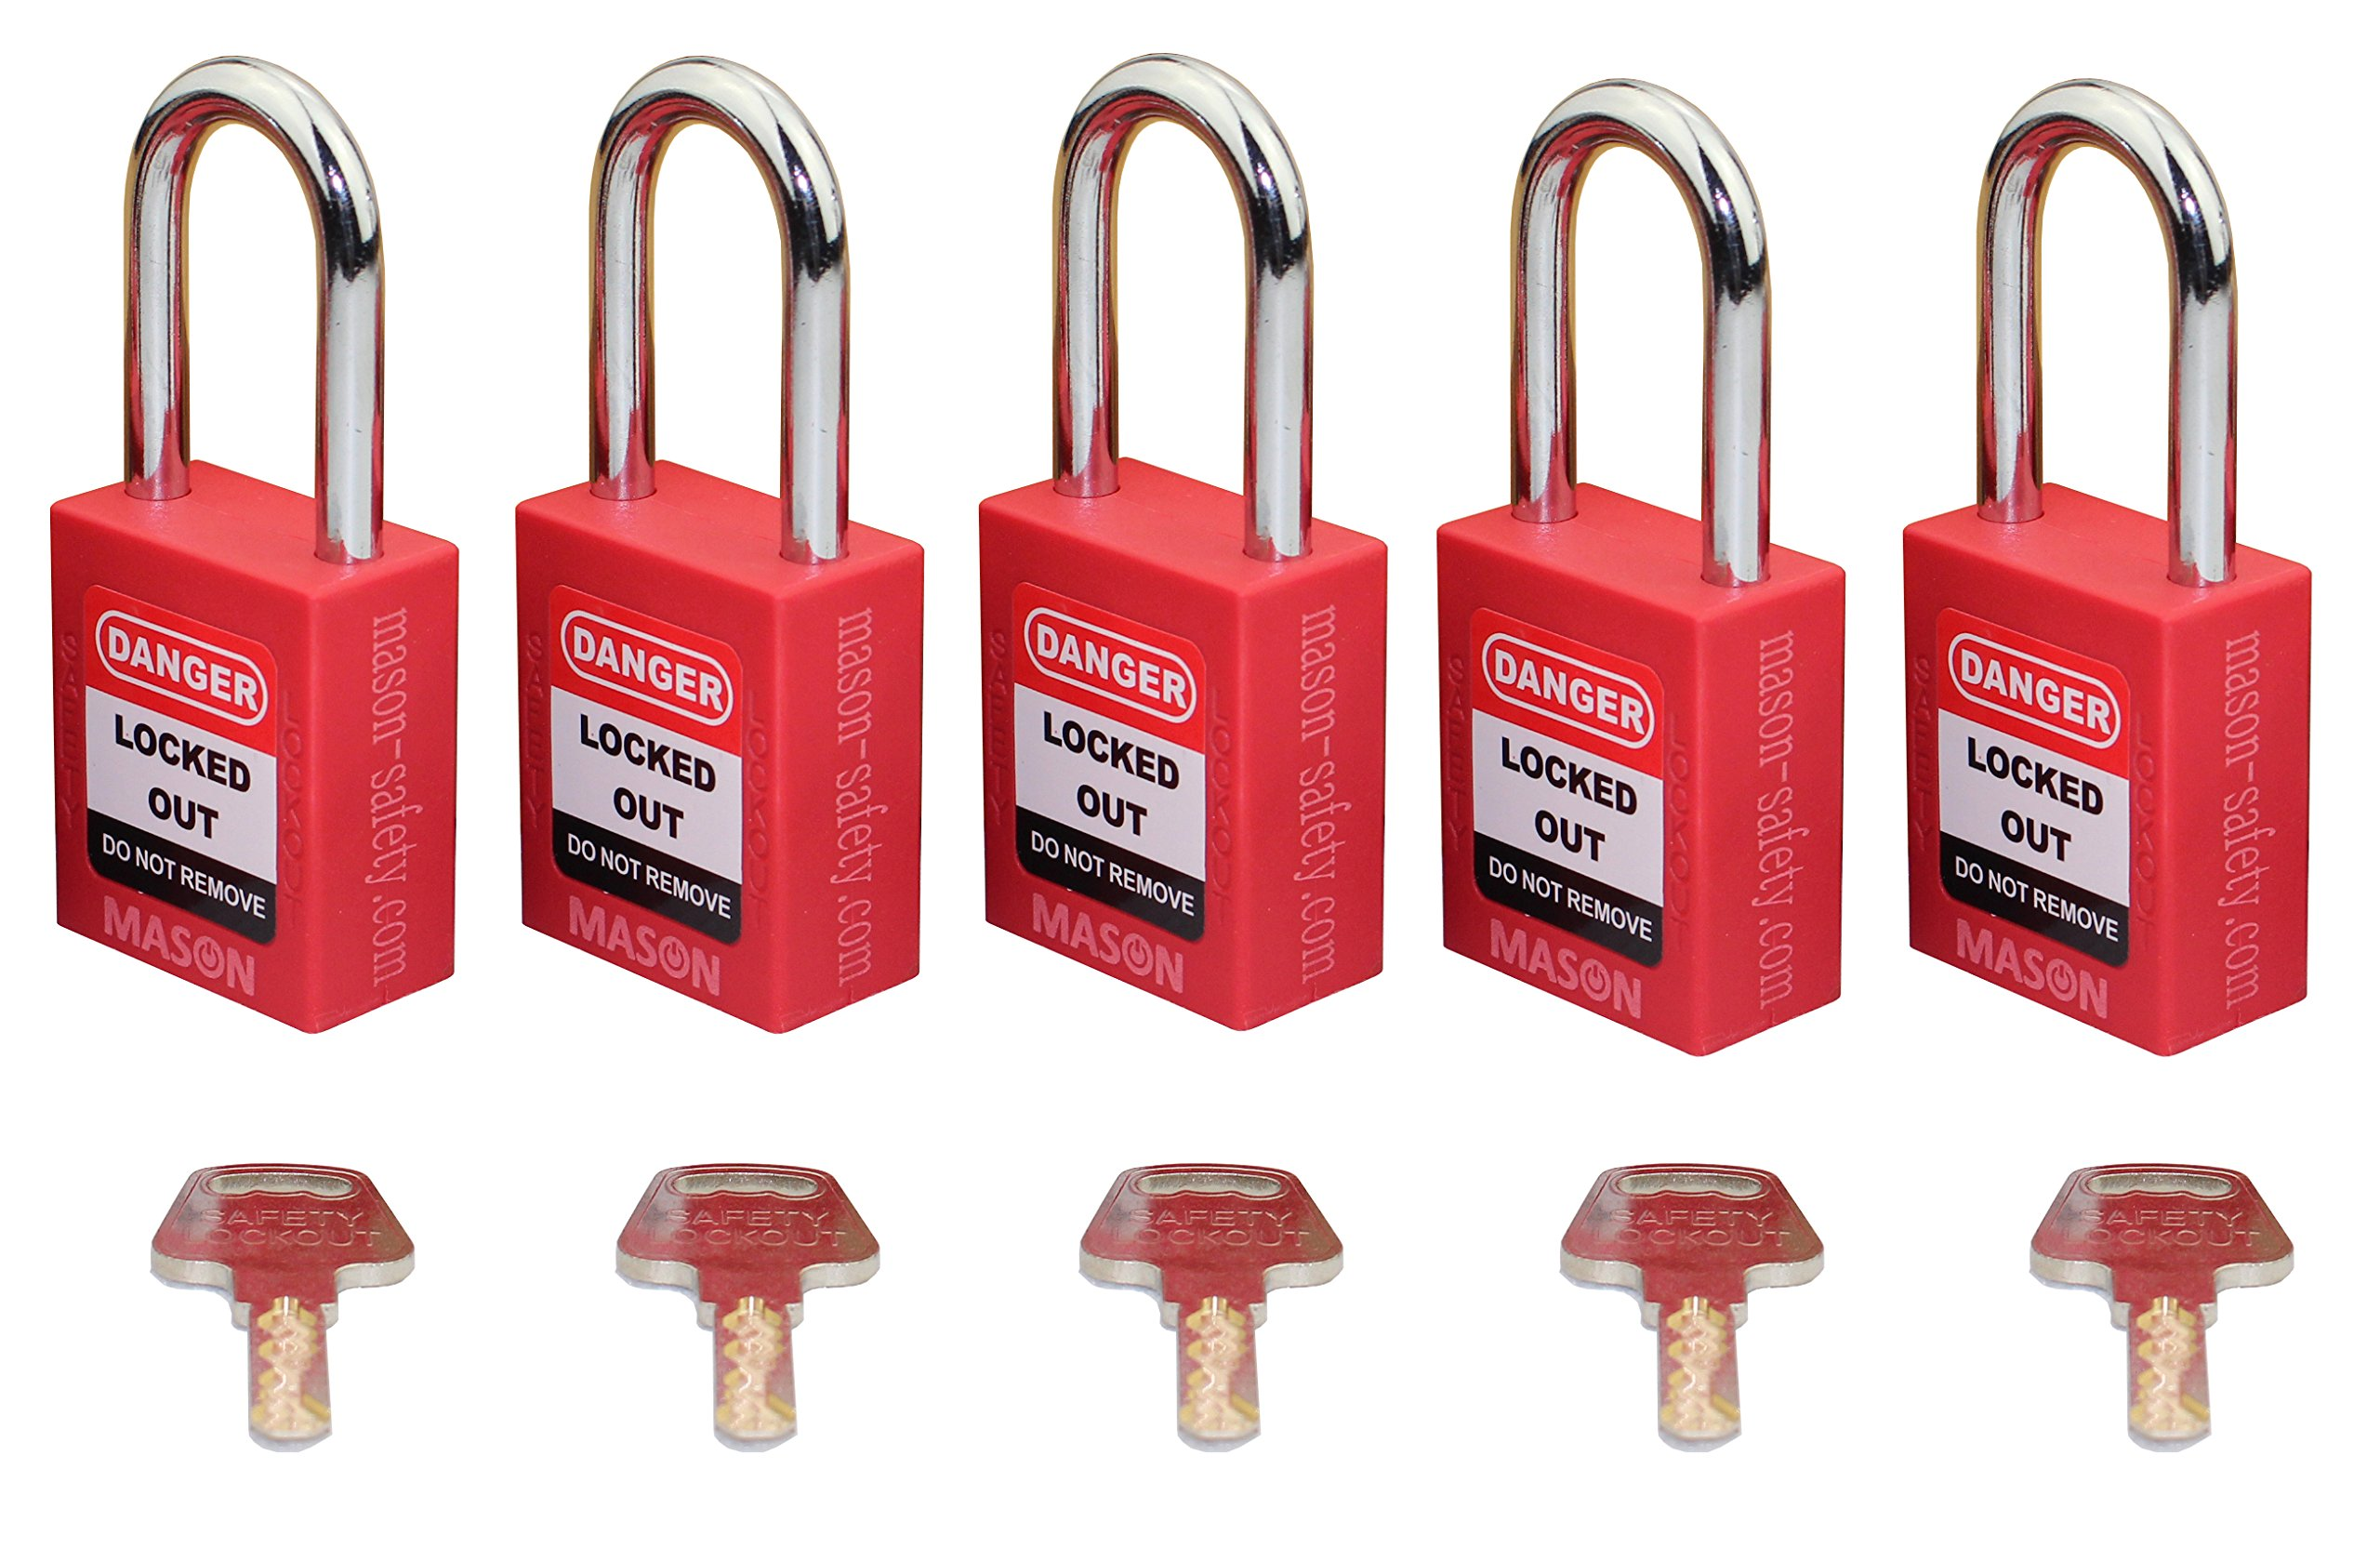 Mason Lockout Tagout 5 PACK KEYED DIFFERENTLY Safety Lockout Padlock, Red LOTO